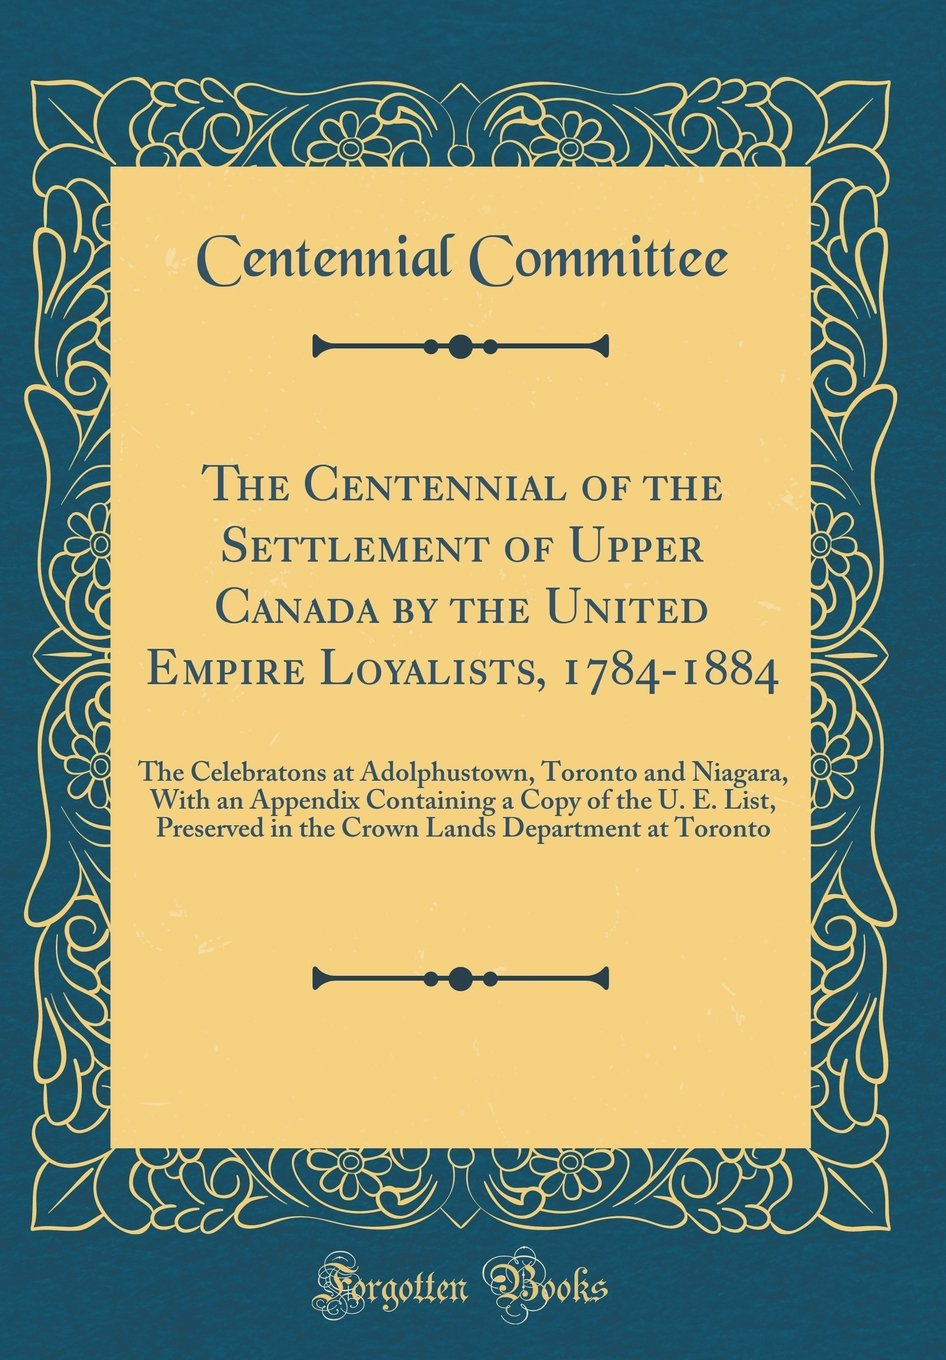 Read Online The Centennial of the Settlement of Upper Canada by the United Empire Loyalists, 1784-1884: The Celebratons at Adolphustown, Toronto and Niagara, with ... in the Crown Lands Department at Toronto PDF